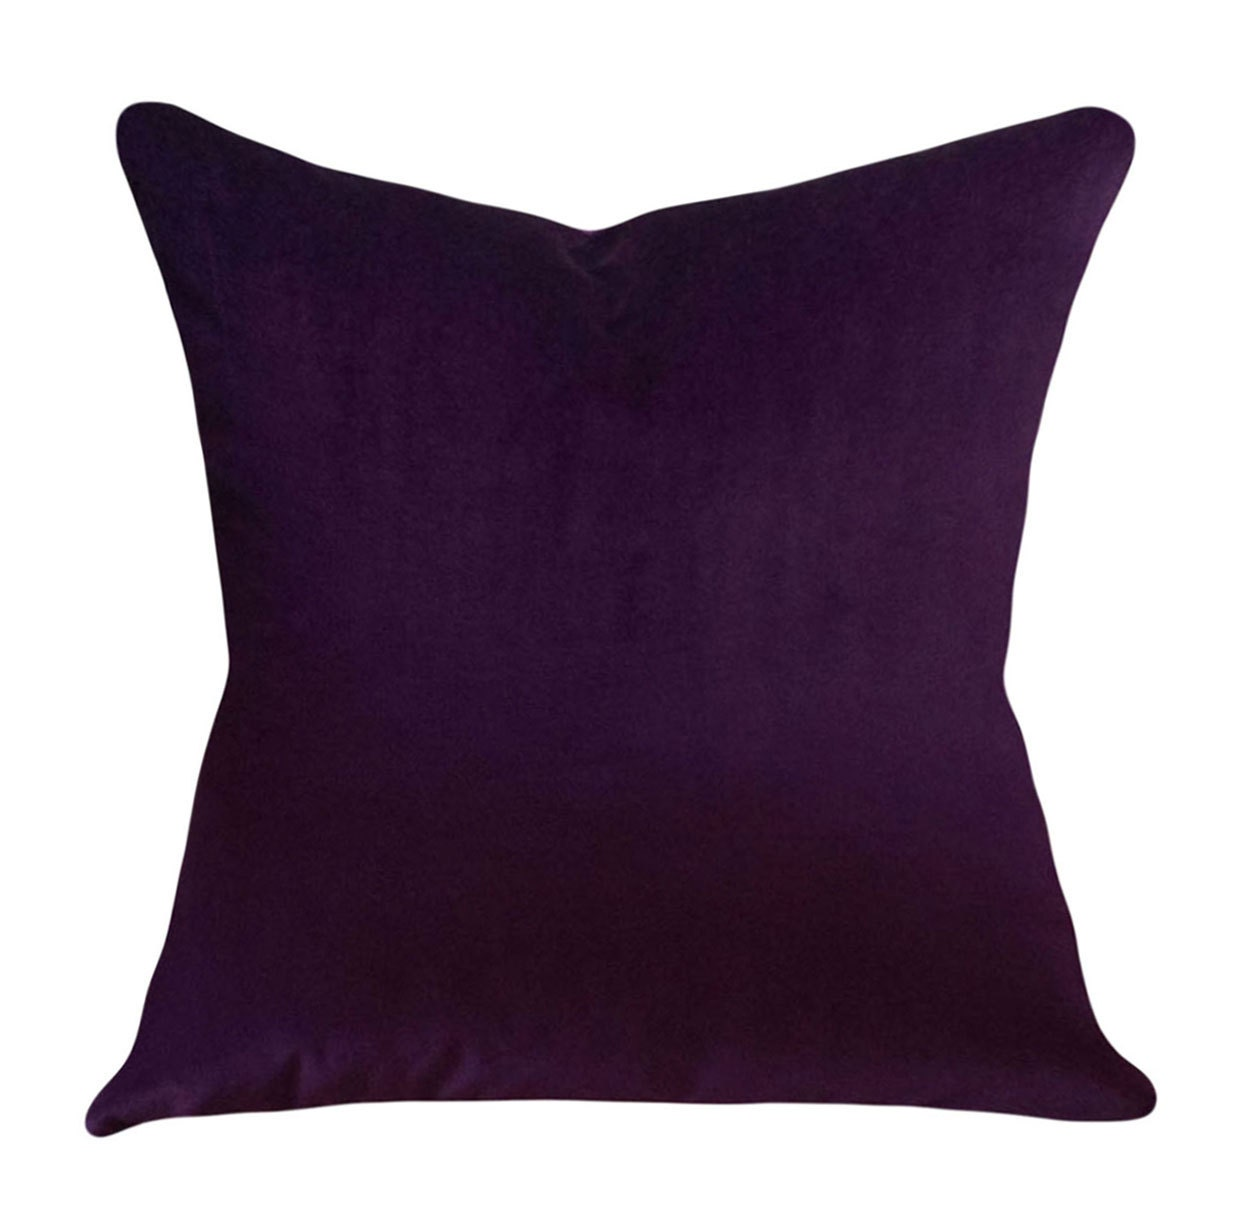 Purple Velvet Decorative Pillow Cover Throw by PillowTimeGirls - photo#36